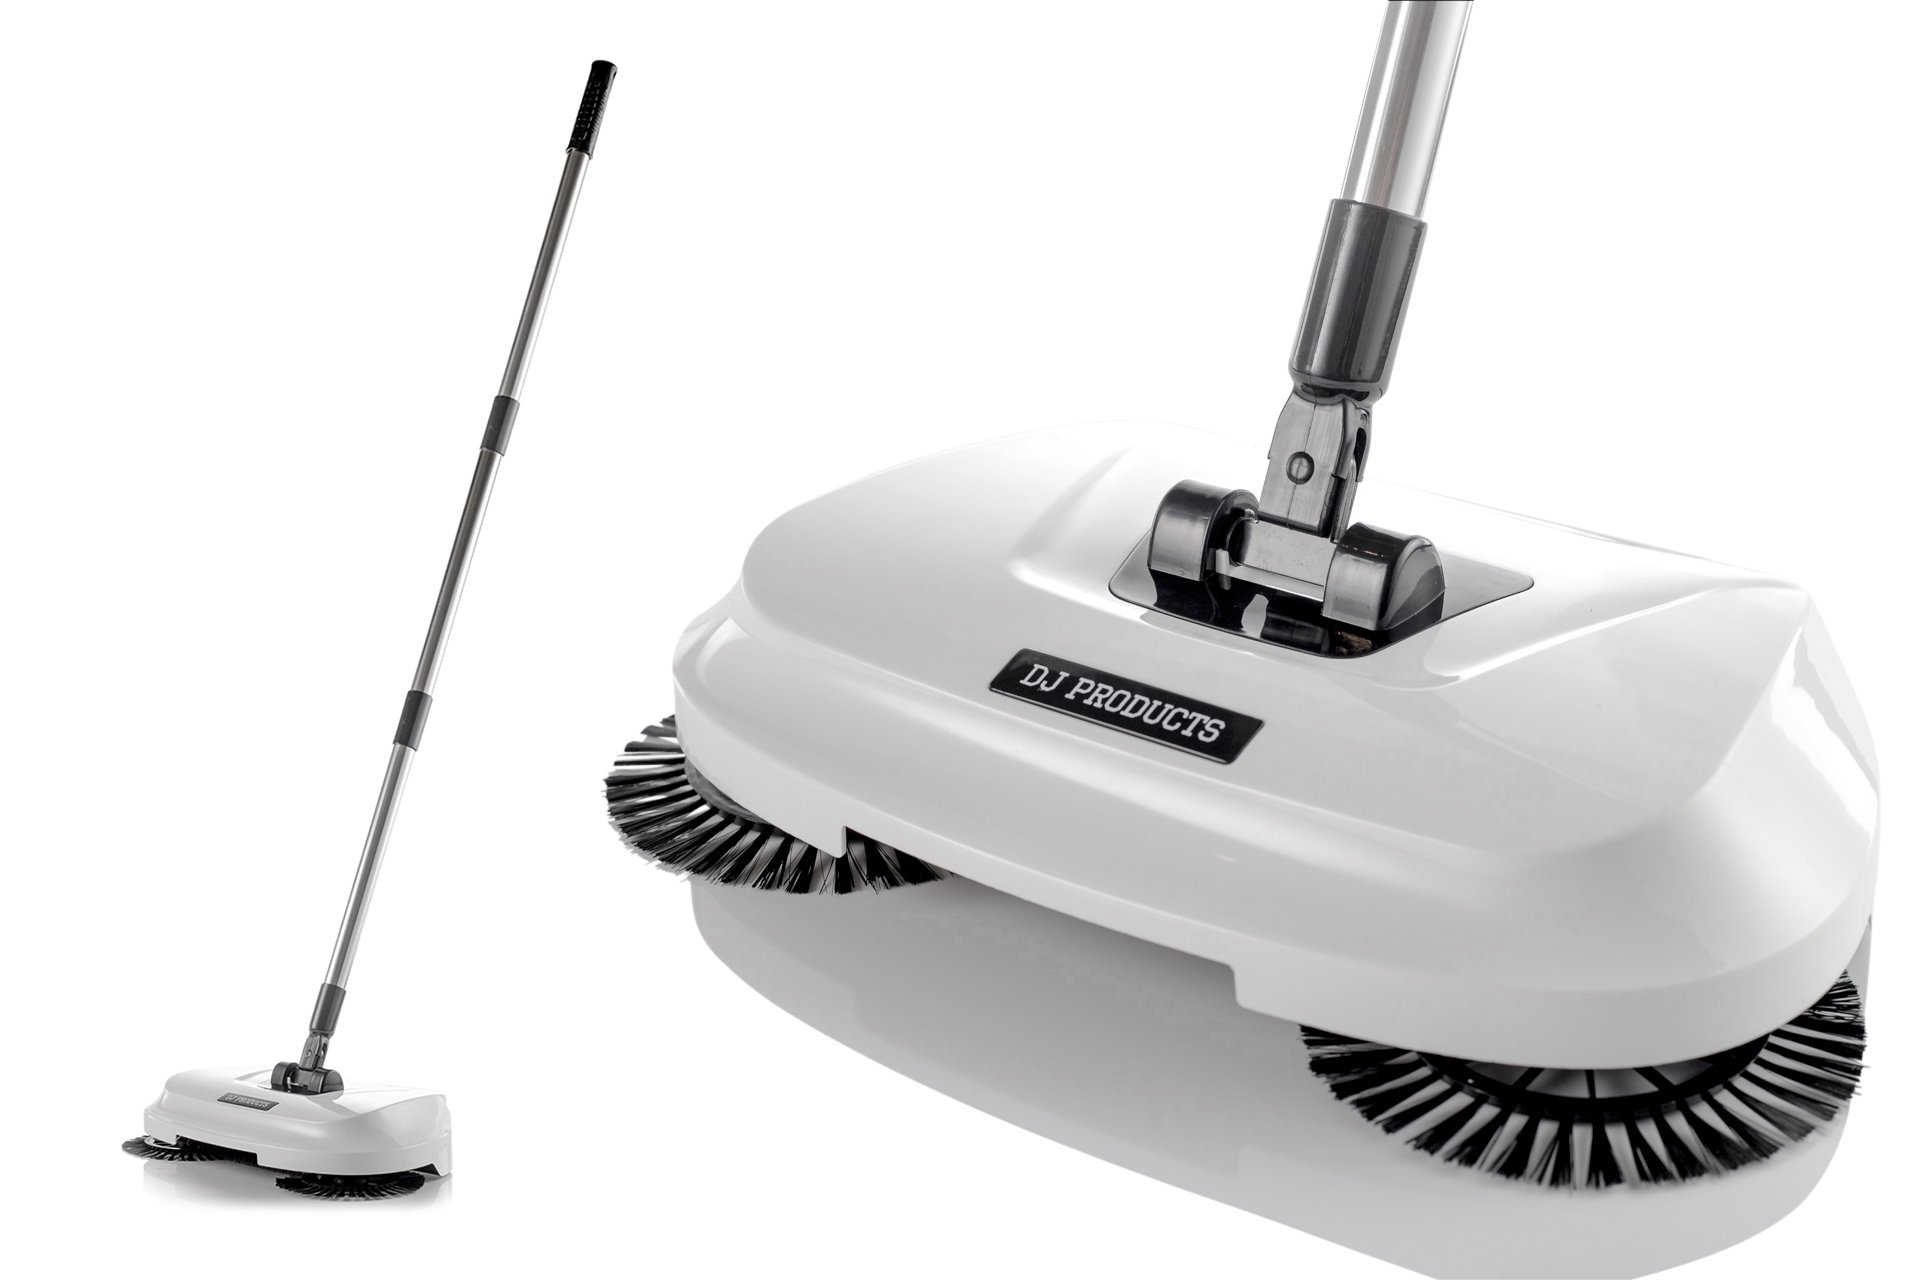 Spinning Cordless Push-Power Broom 3 in 1   360 Degree Rotating Cleaning Sweeper Tool   Lightweight, Non-Electric, Safe, Easy to Use   Scrub + Sweep + Dustbin All in One!